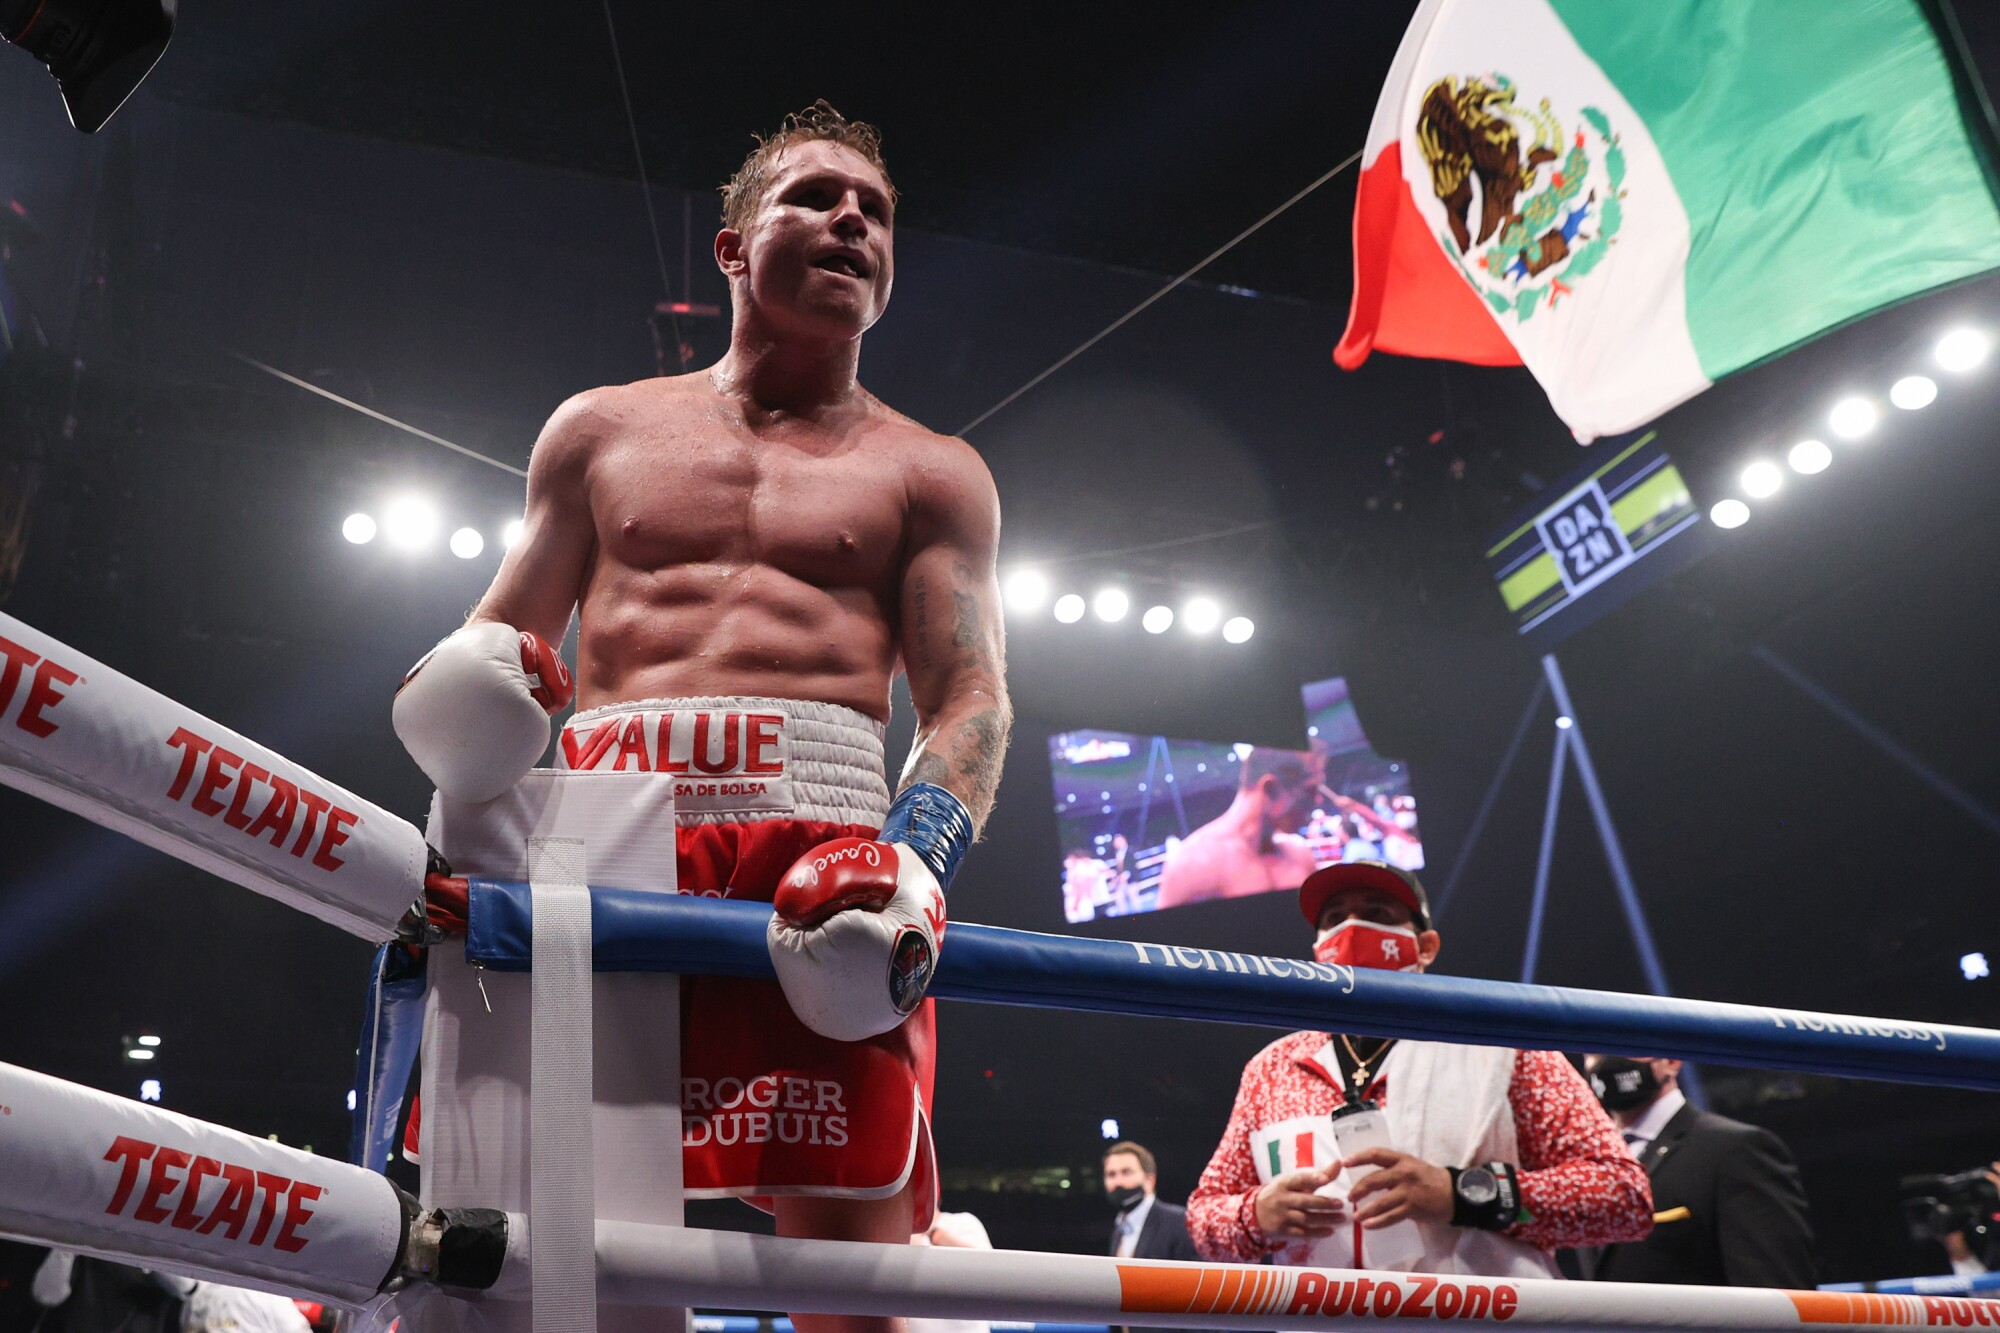 Canelo Alvarez celebrates after defeating Callum Smith by unanimous decision in a championship title fight.